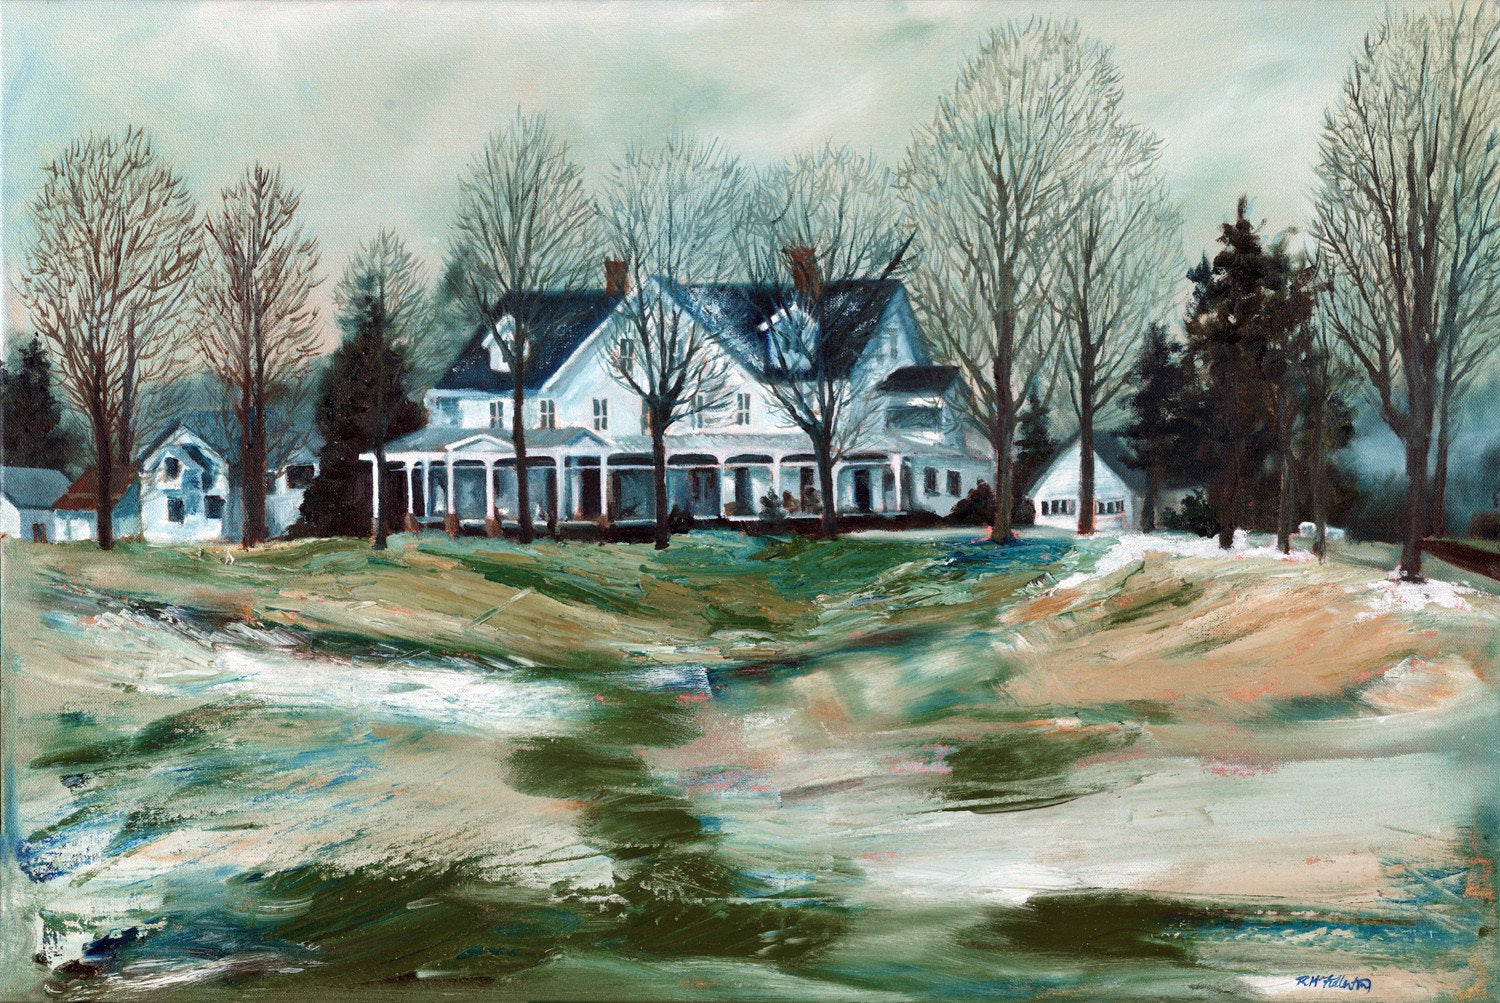 """Early Snow"" is a 20 by 30 inch oil on canvas painting by Rebecca M. Fullerton, depicting a stately country inn on a field dusted with the first snow of the season. The detailed facade of the inn is flanked by delicate, bare trees, while the foreground grasses are done in abstract style using a pallet knife."